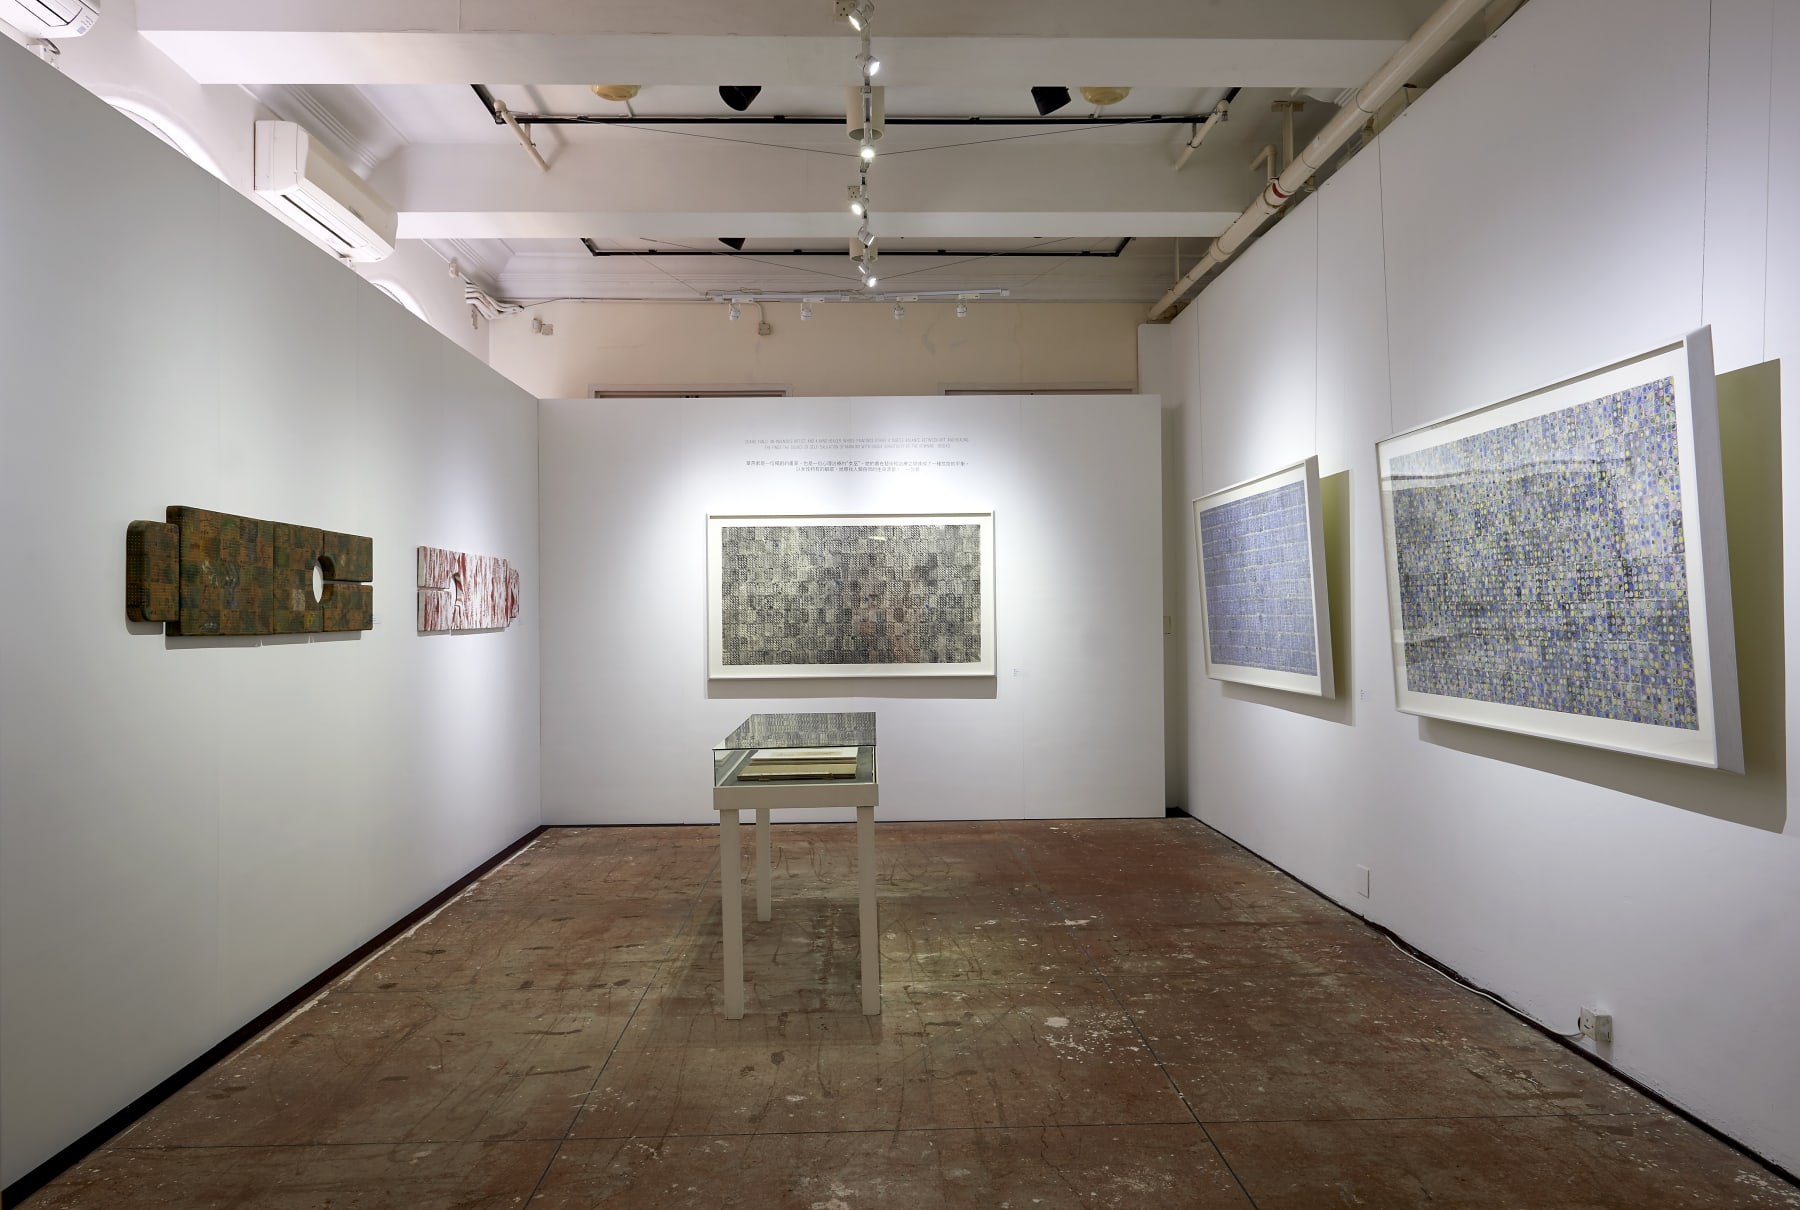 Essence - Zhang Yanzi Solo Exhibition at HKMMS